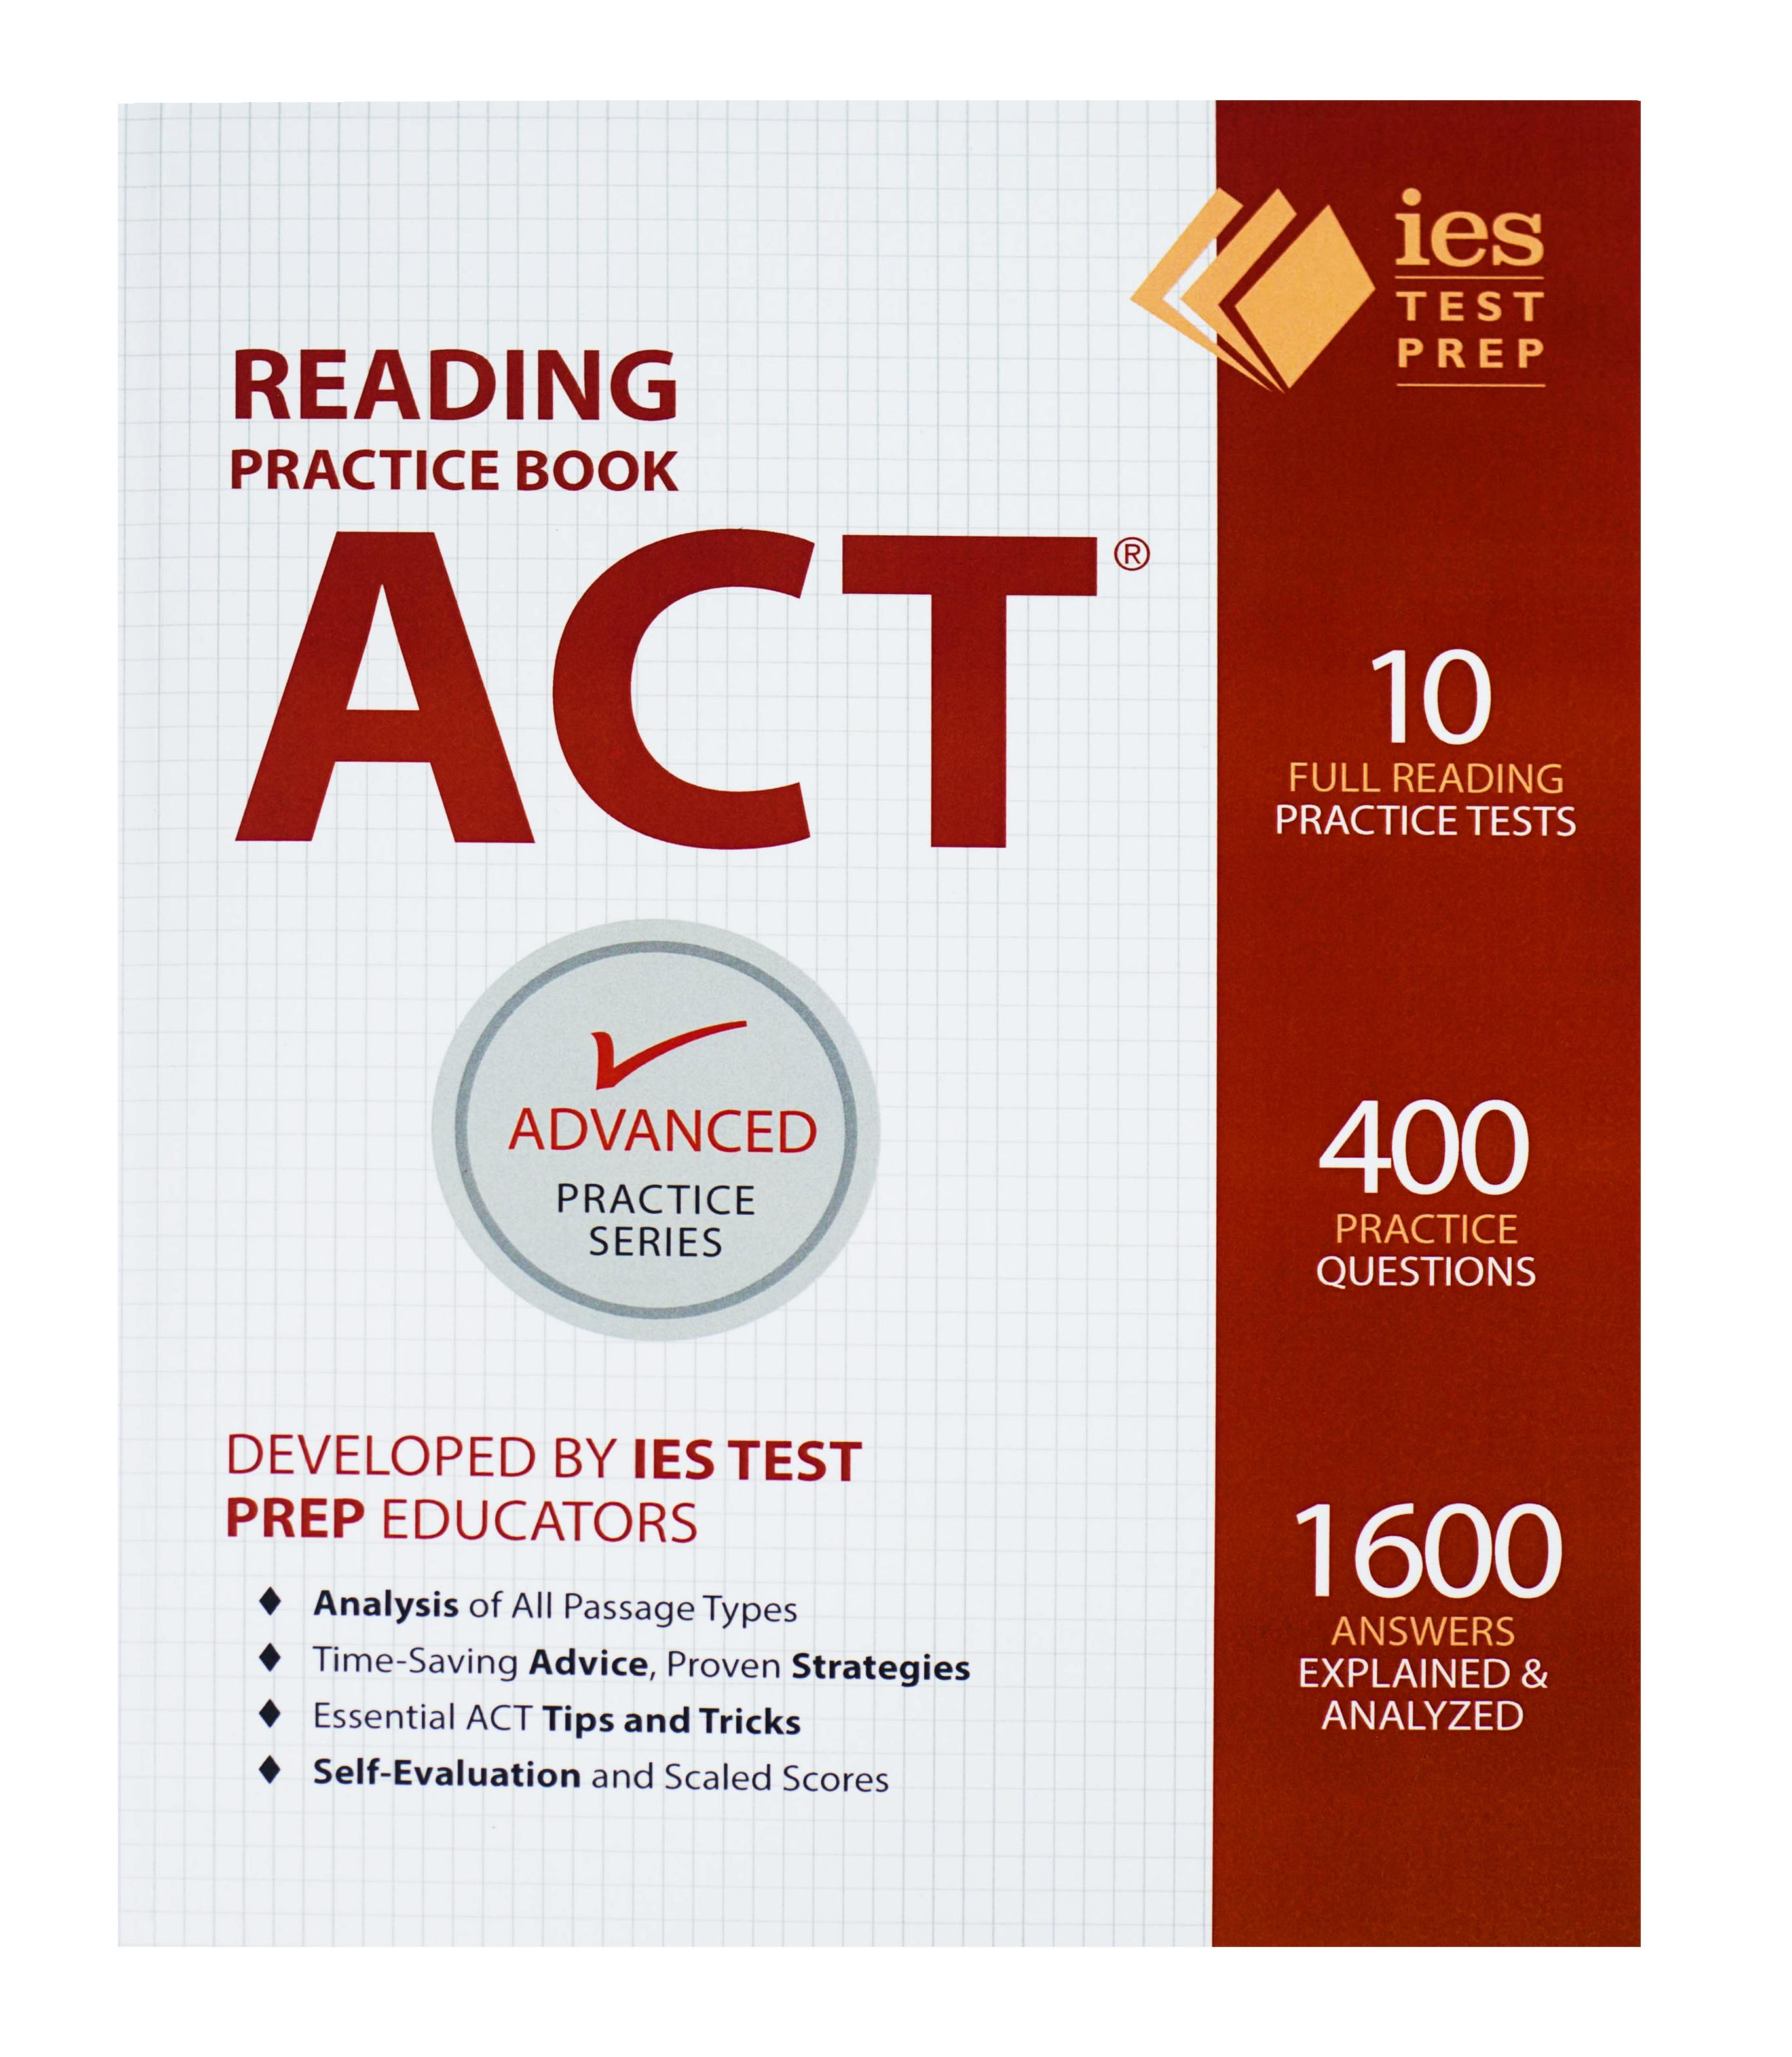 BWW Reviews: ACT READING PRACTICE BOOK By IES Is An